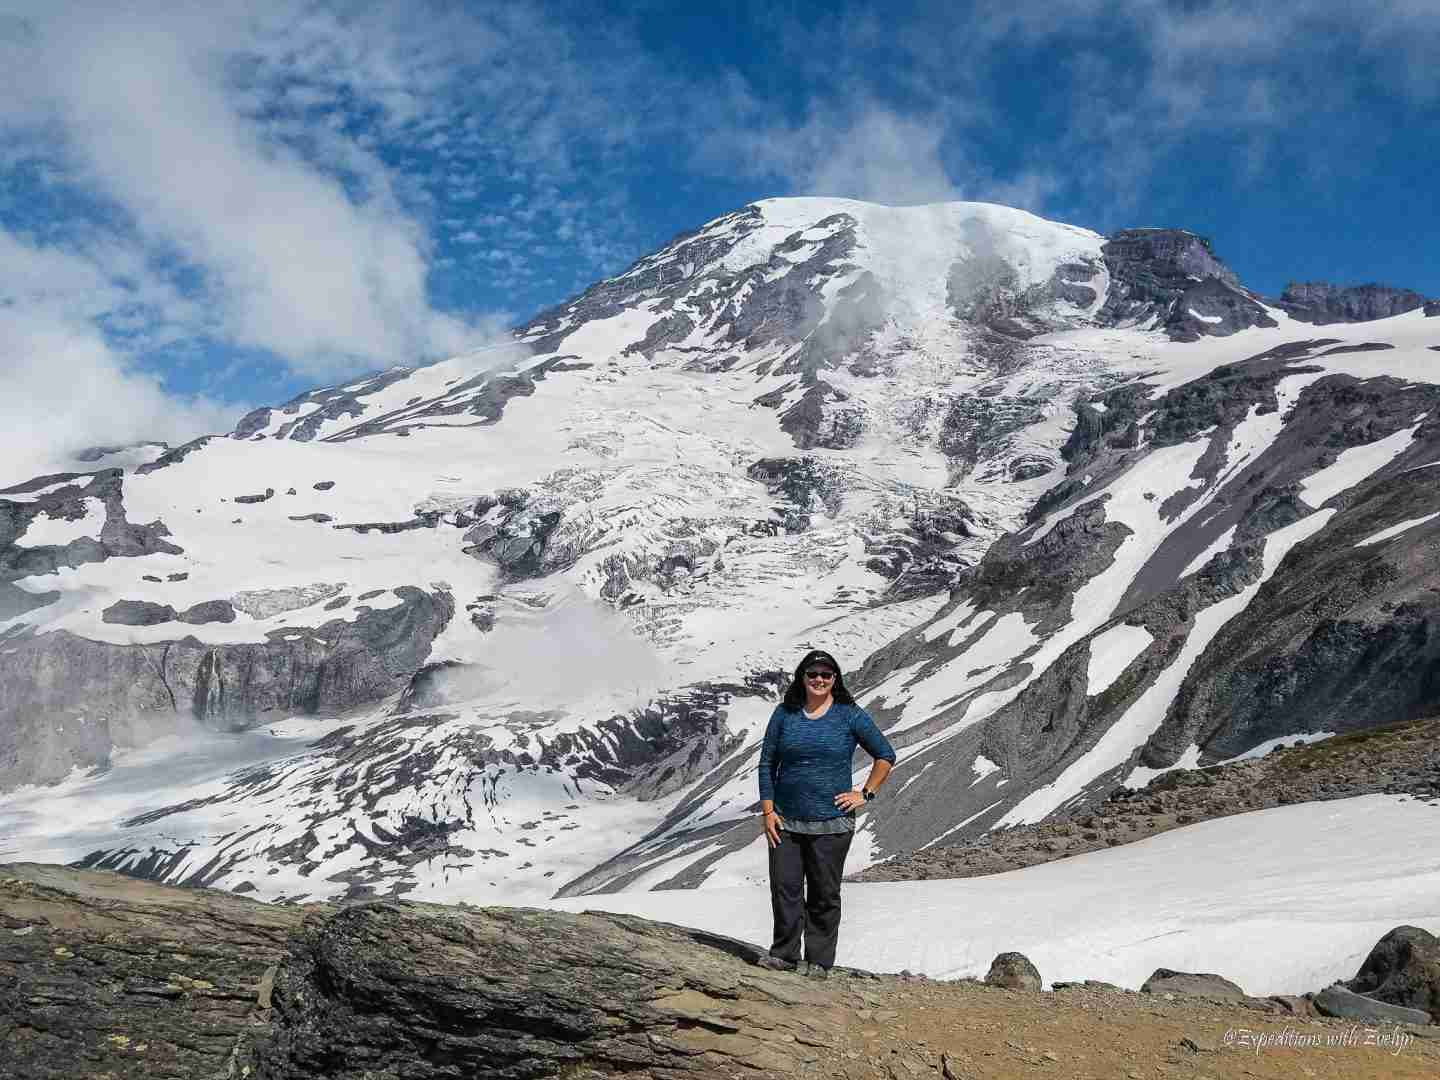 A female hiker poses in front of the snow covered Mount Rainier volcano with blue sky and light clouds.